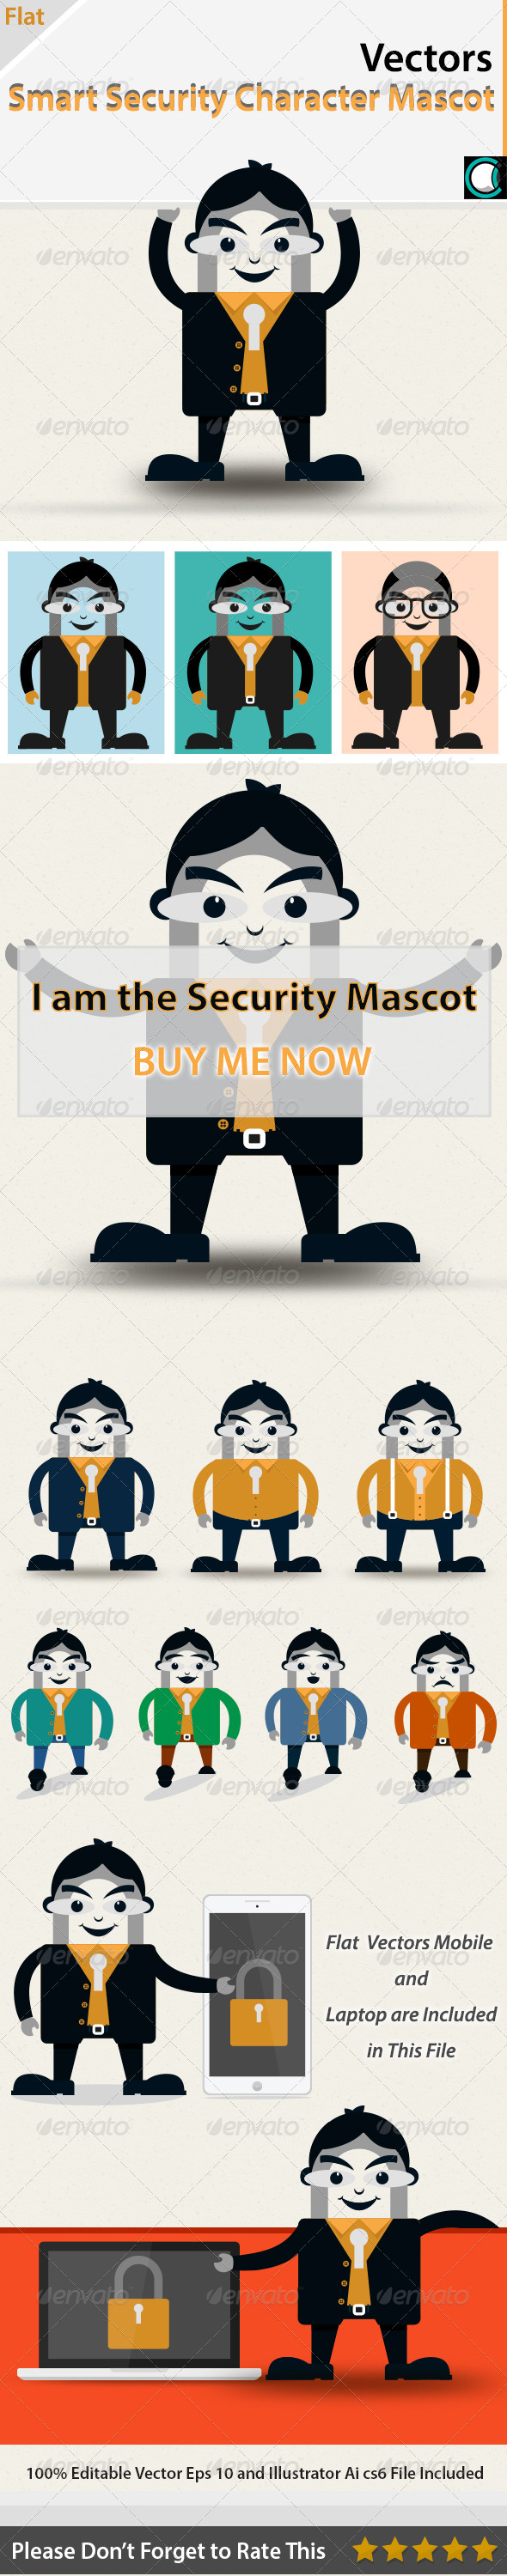 GraphicRiver Smart Security Character Mascot 5669506